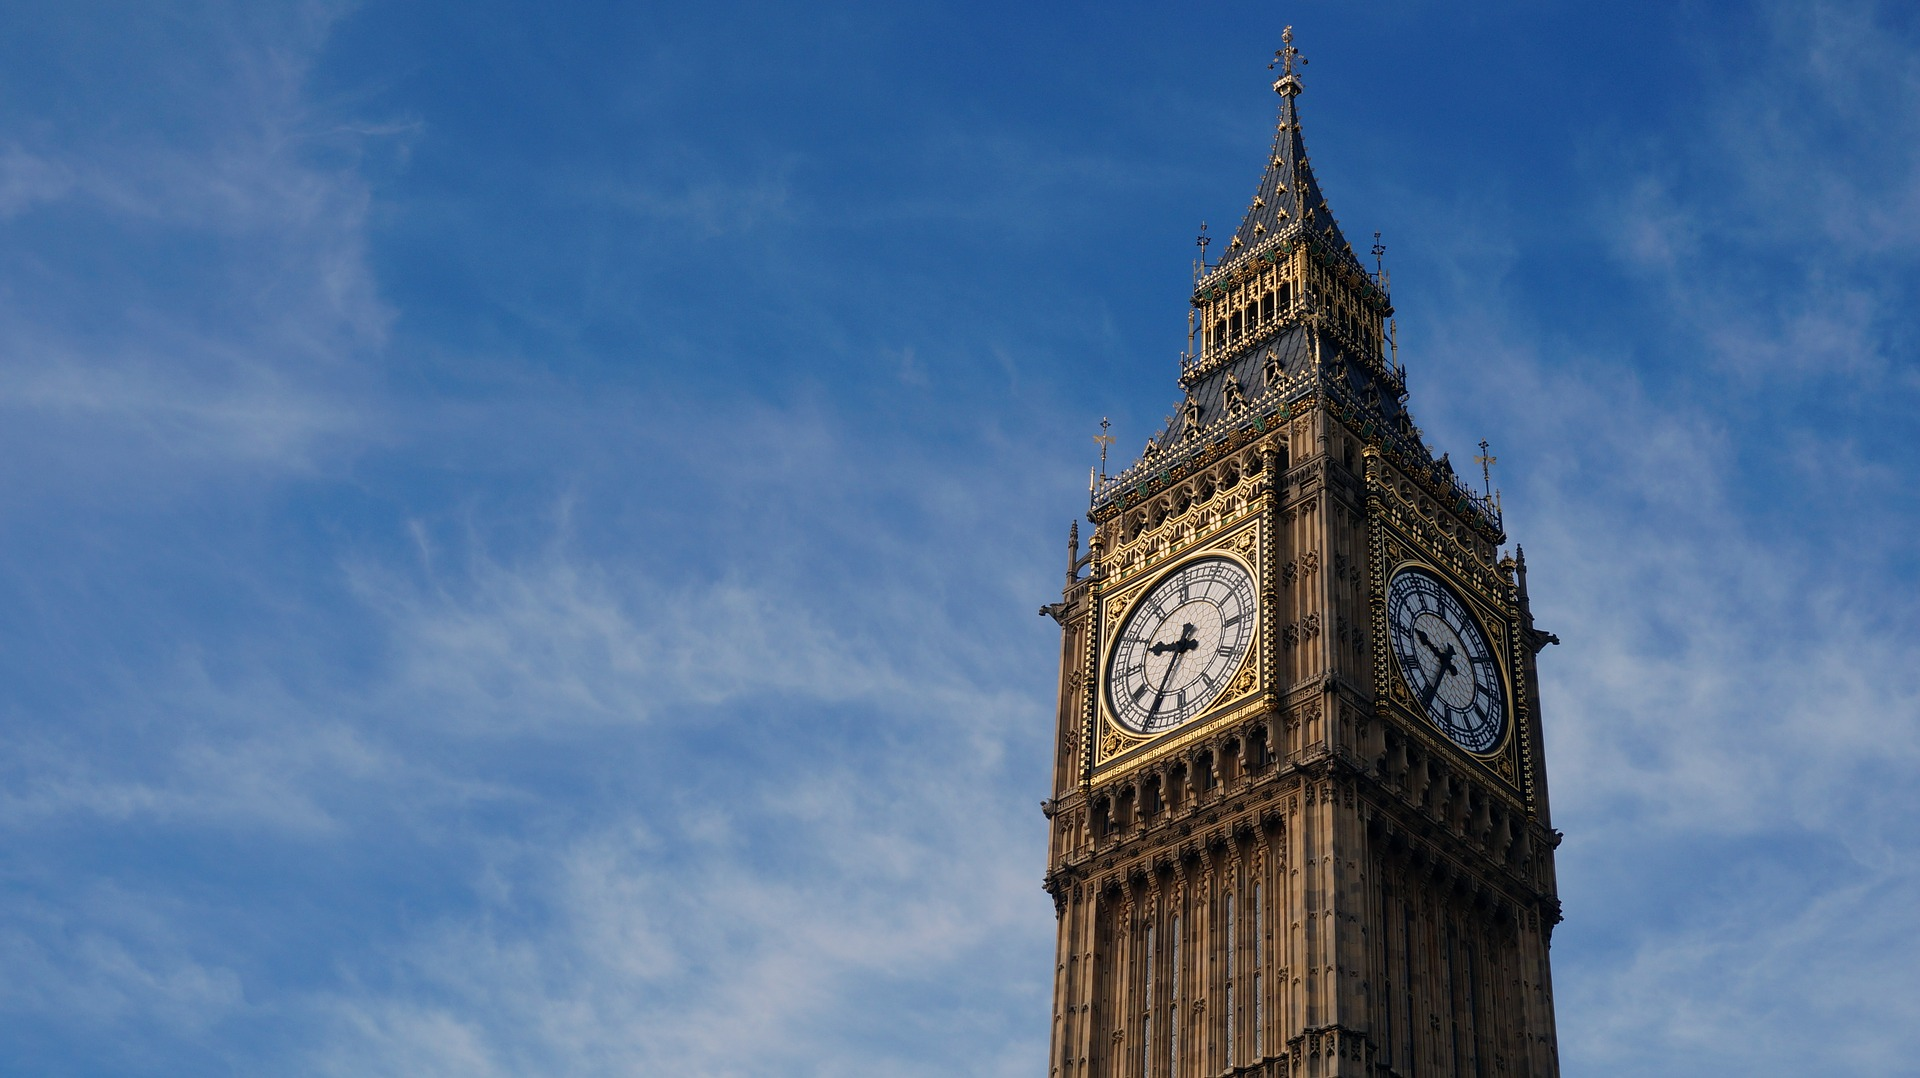 who will fill the silence left by big ben